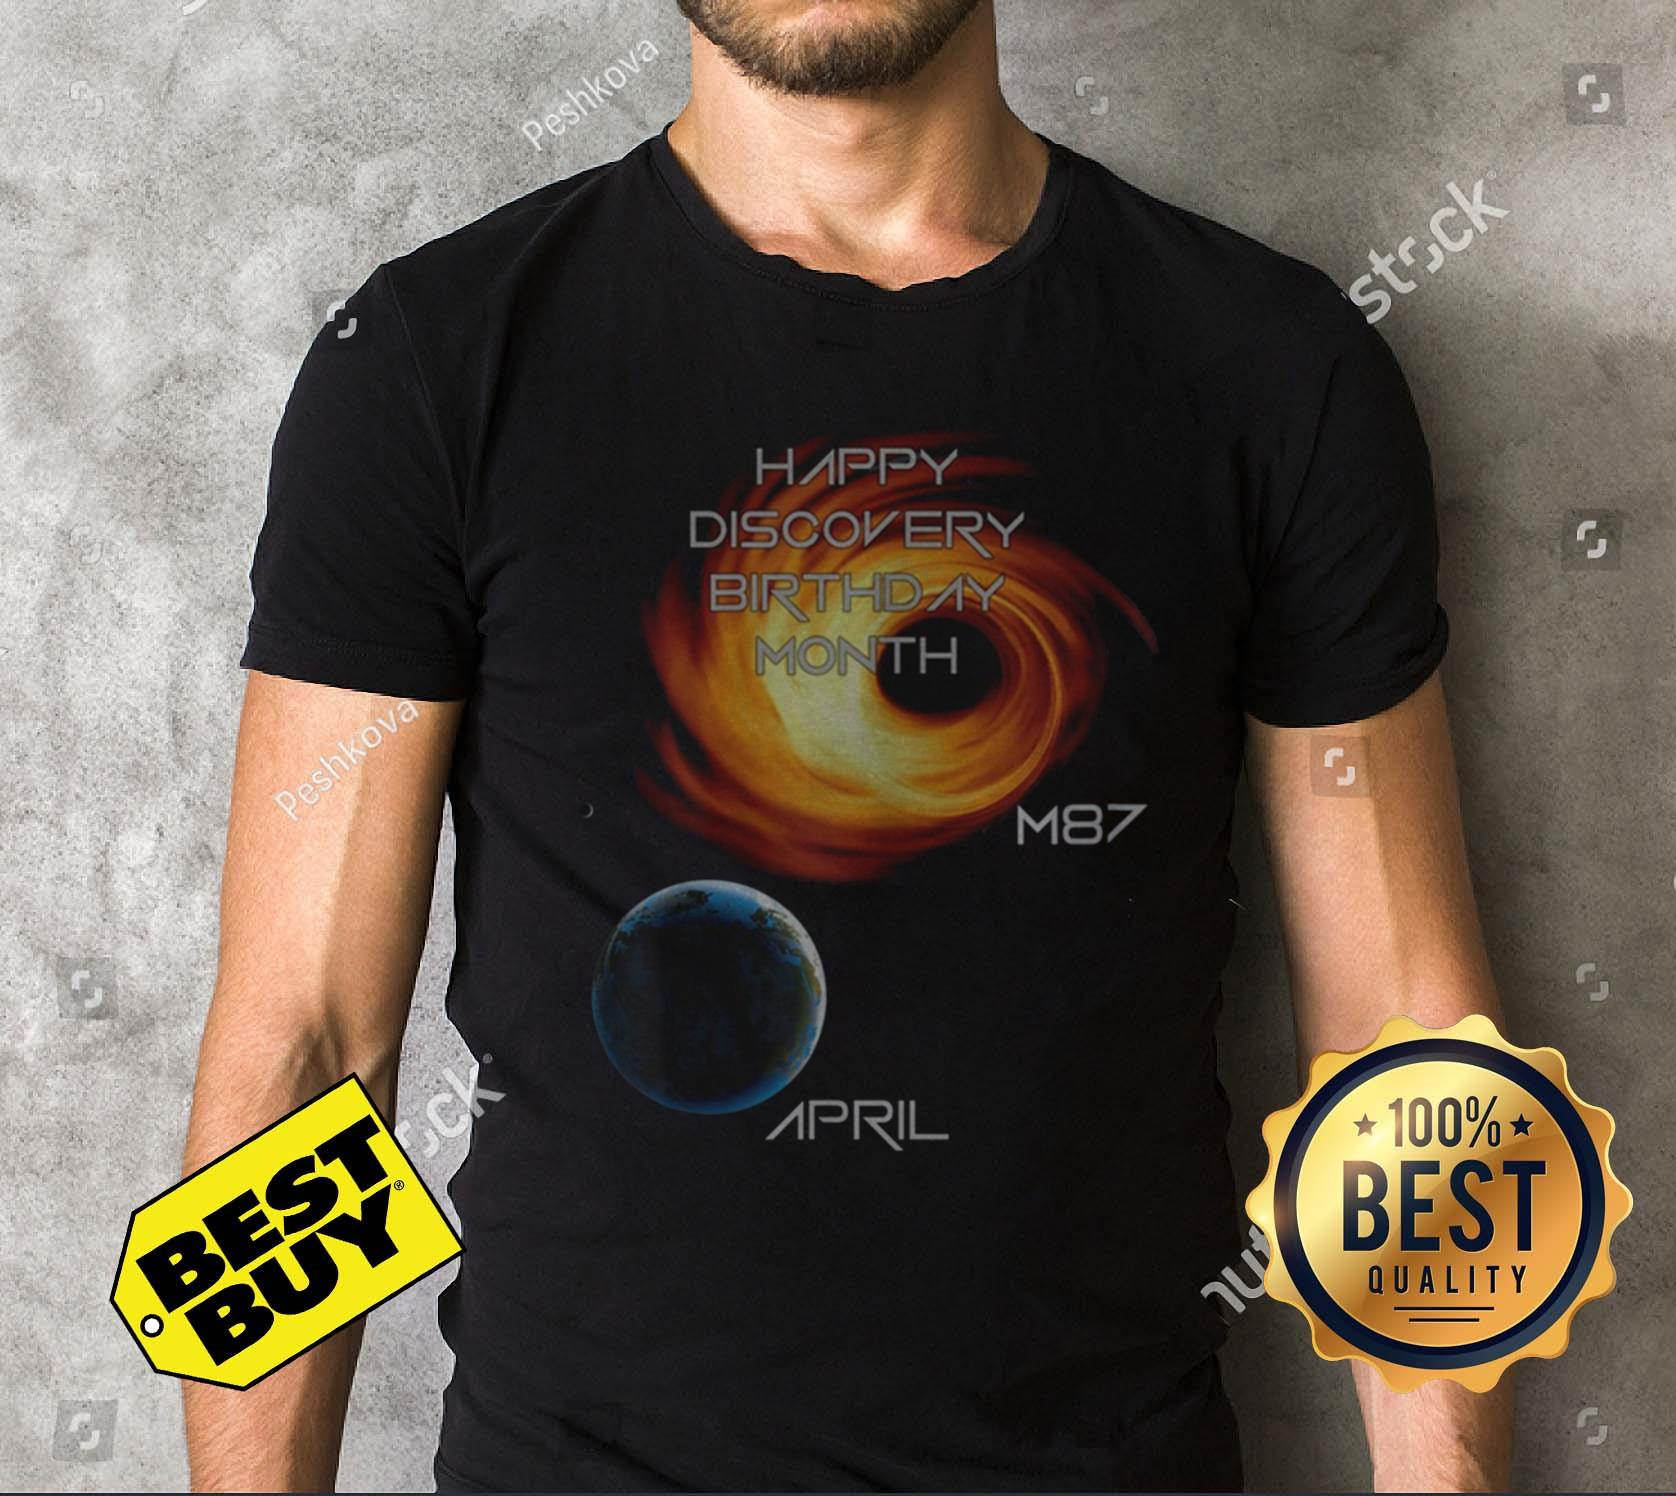 Happy Discovery Birthday Month First Picture Black Hole M87 Galaxy April 10 V Neck